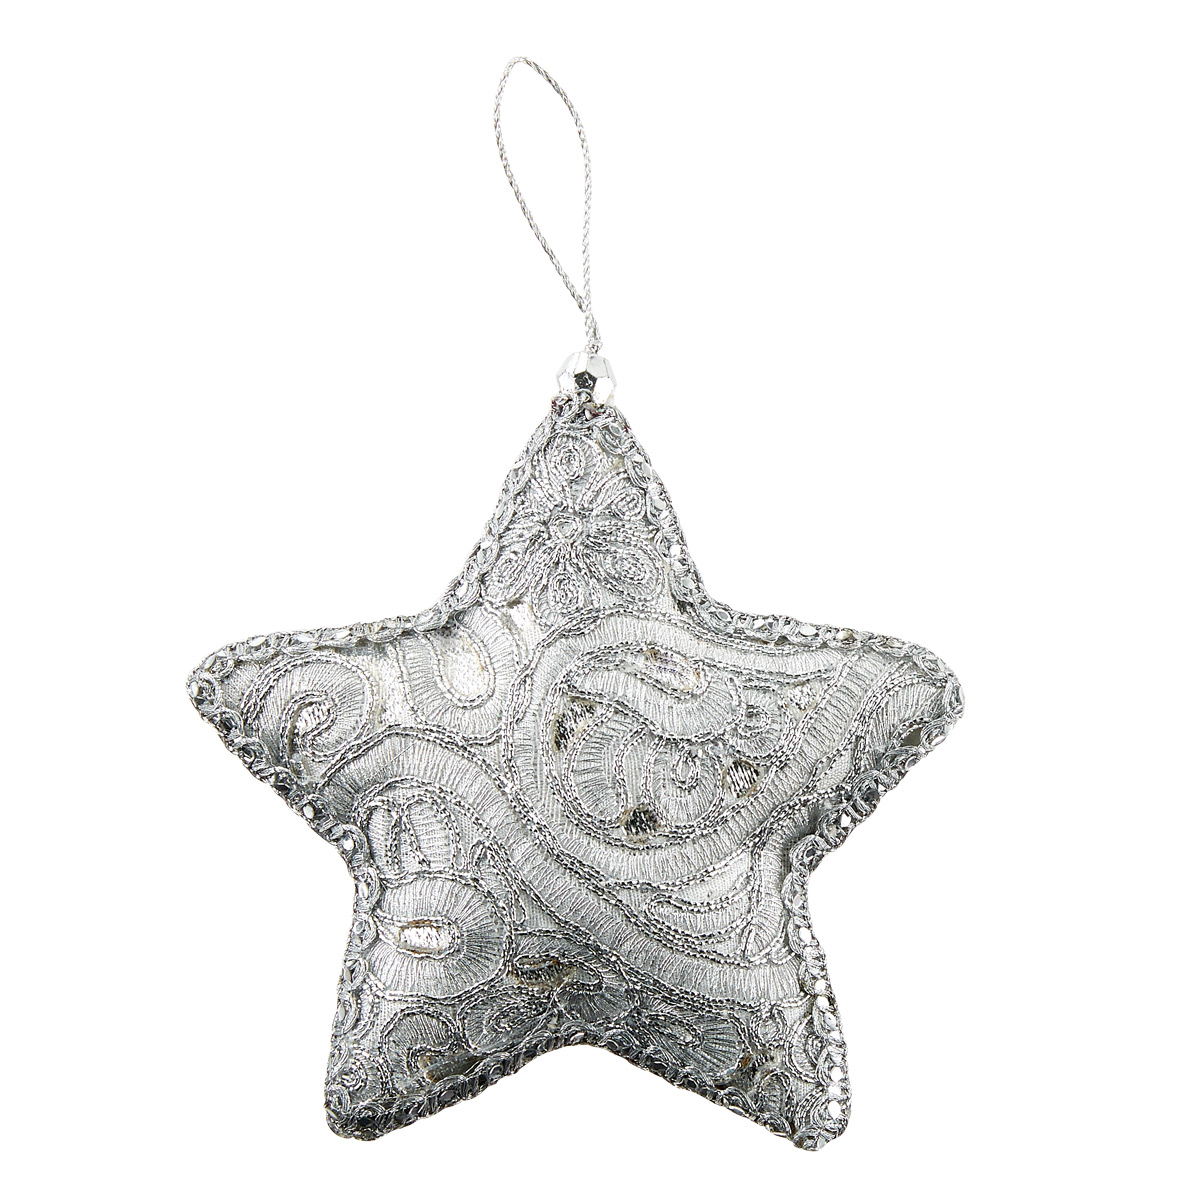 Metallic Embroidered Star Tie-On Ornament